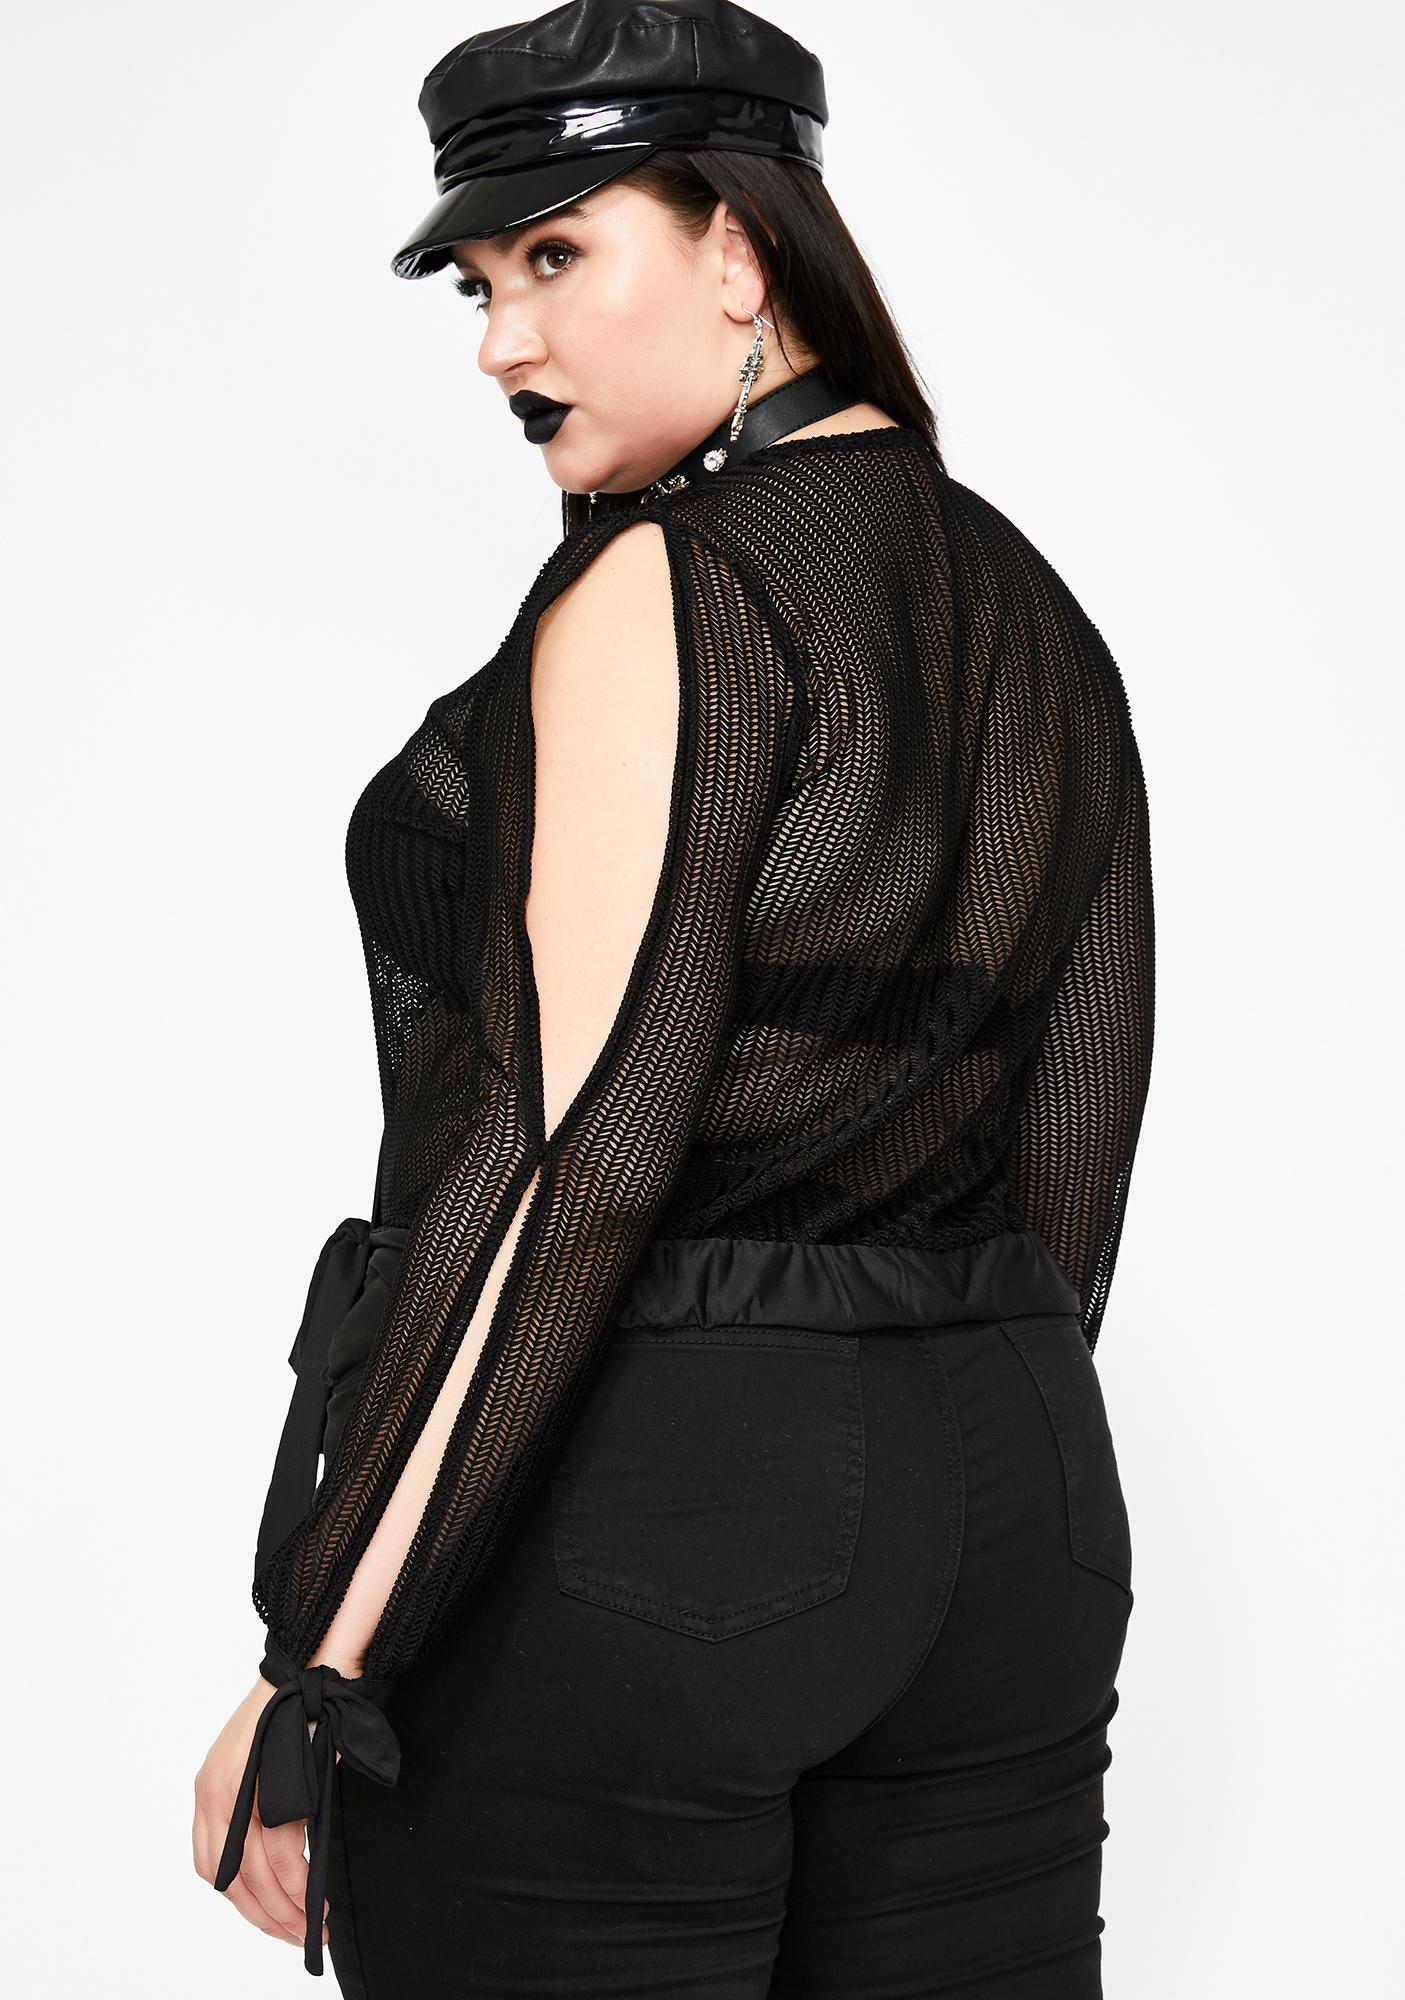 Babe Summoning Wrap Top